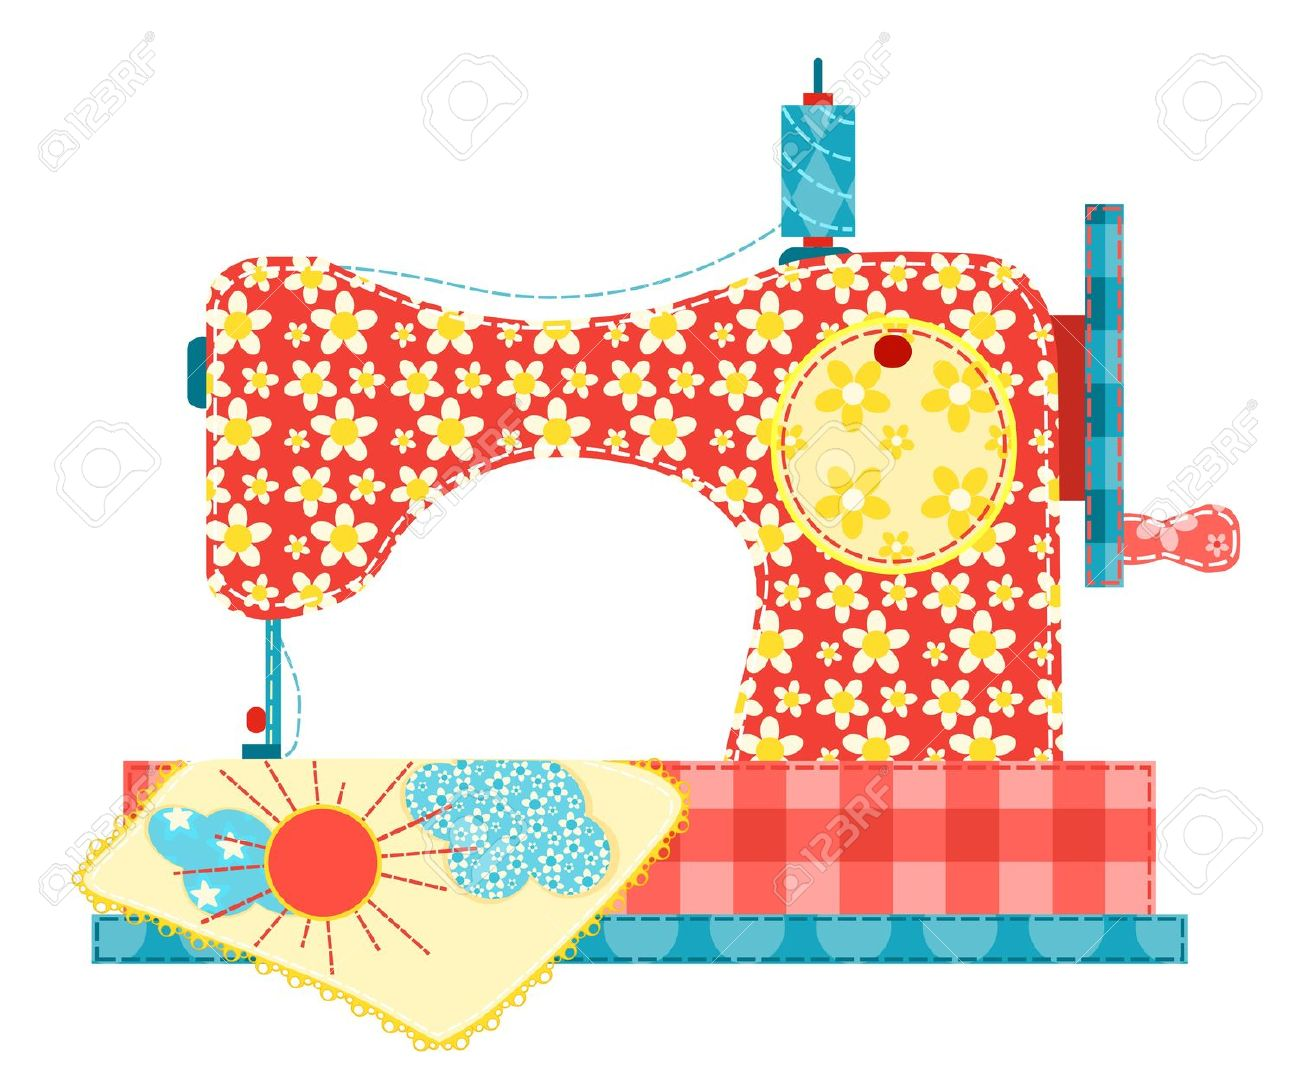 Patchwork clipart sewing Sewing Machine Machine Sewing clipart